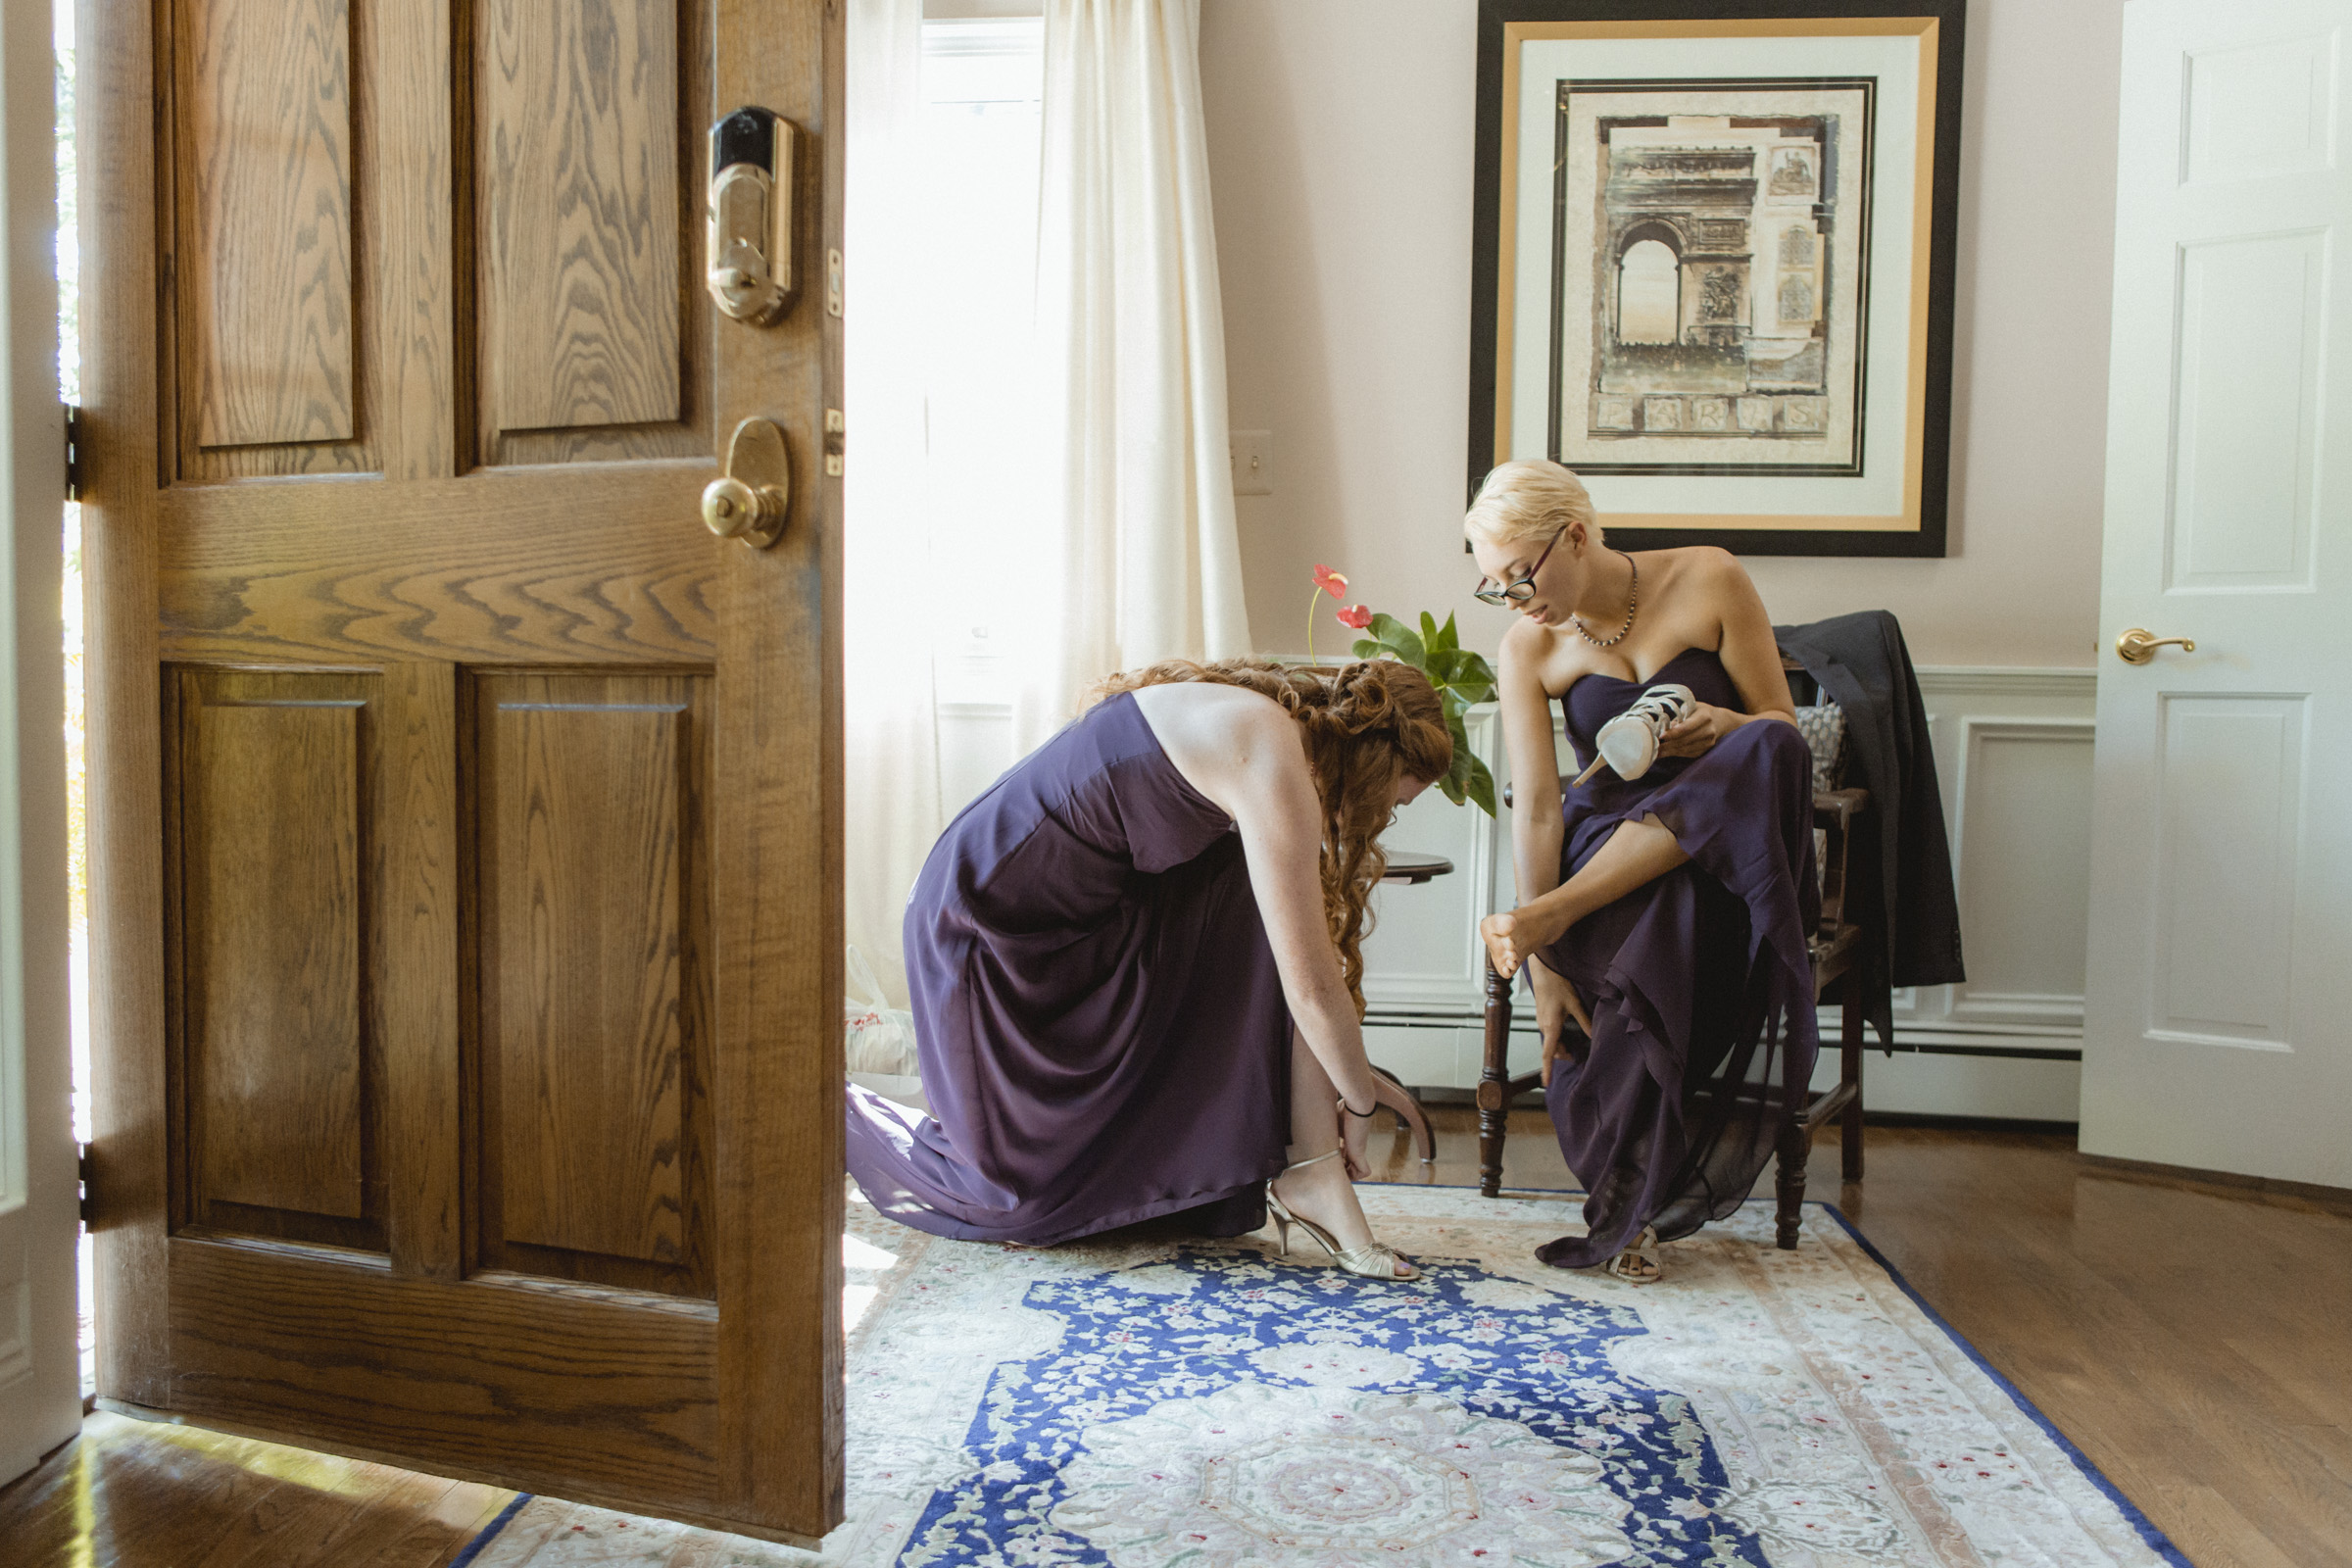 Bridesmaids put on their shoes - - Estate at Florentine Gardens wedding - Hudson Valley Wedding - Kelsey & Anish's wedding - Amy Sims Photography